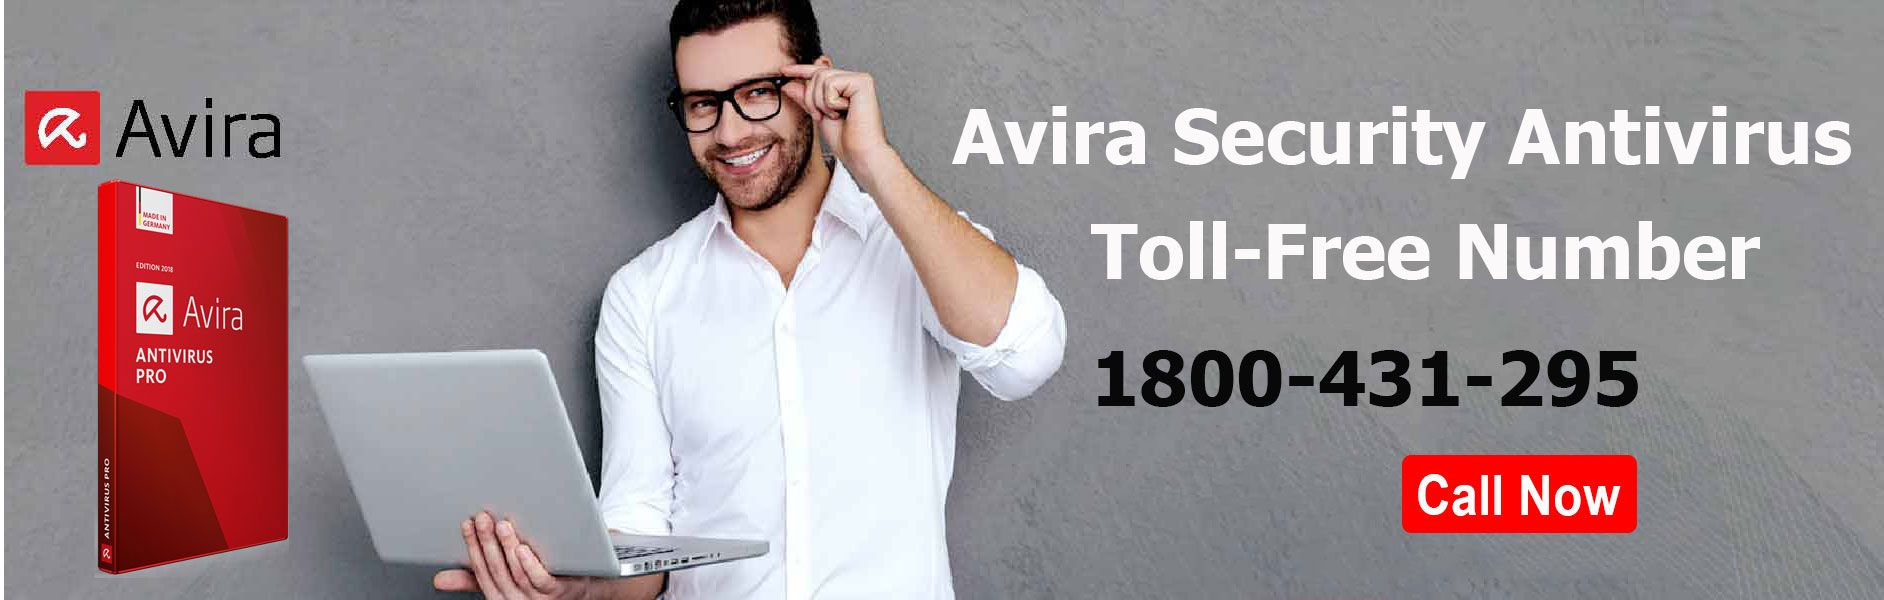 Pin on Avira Technical Support Toll free No. 1800431295